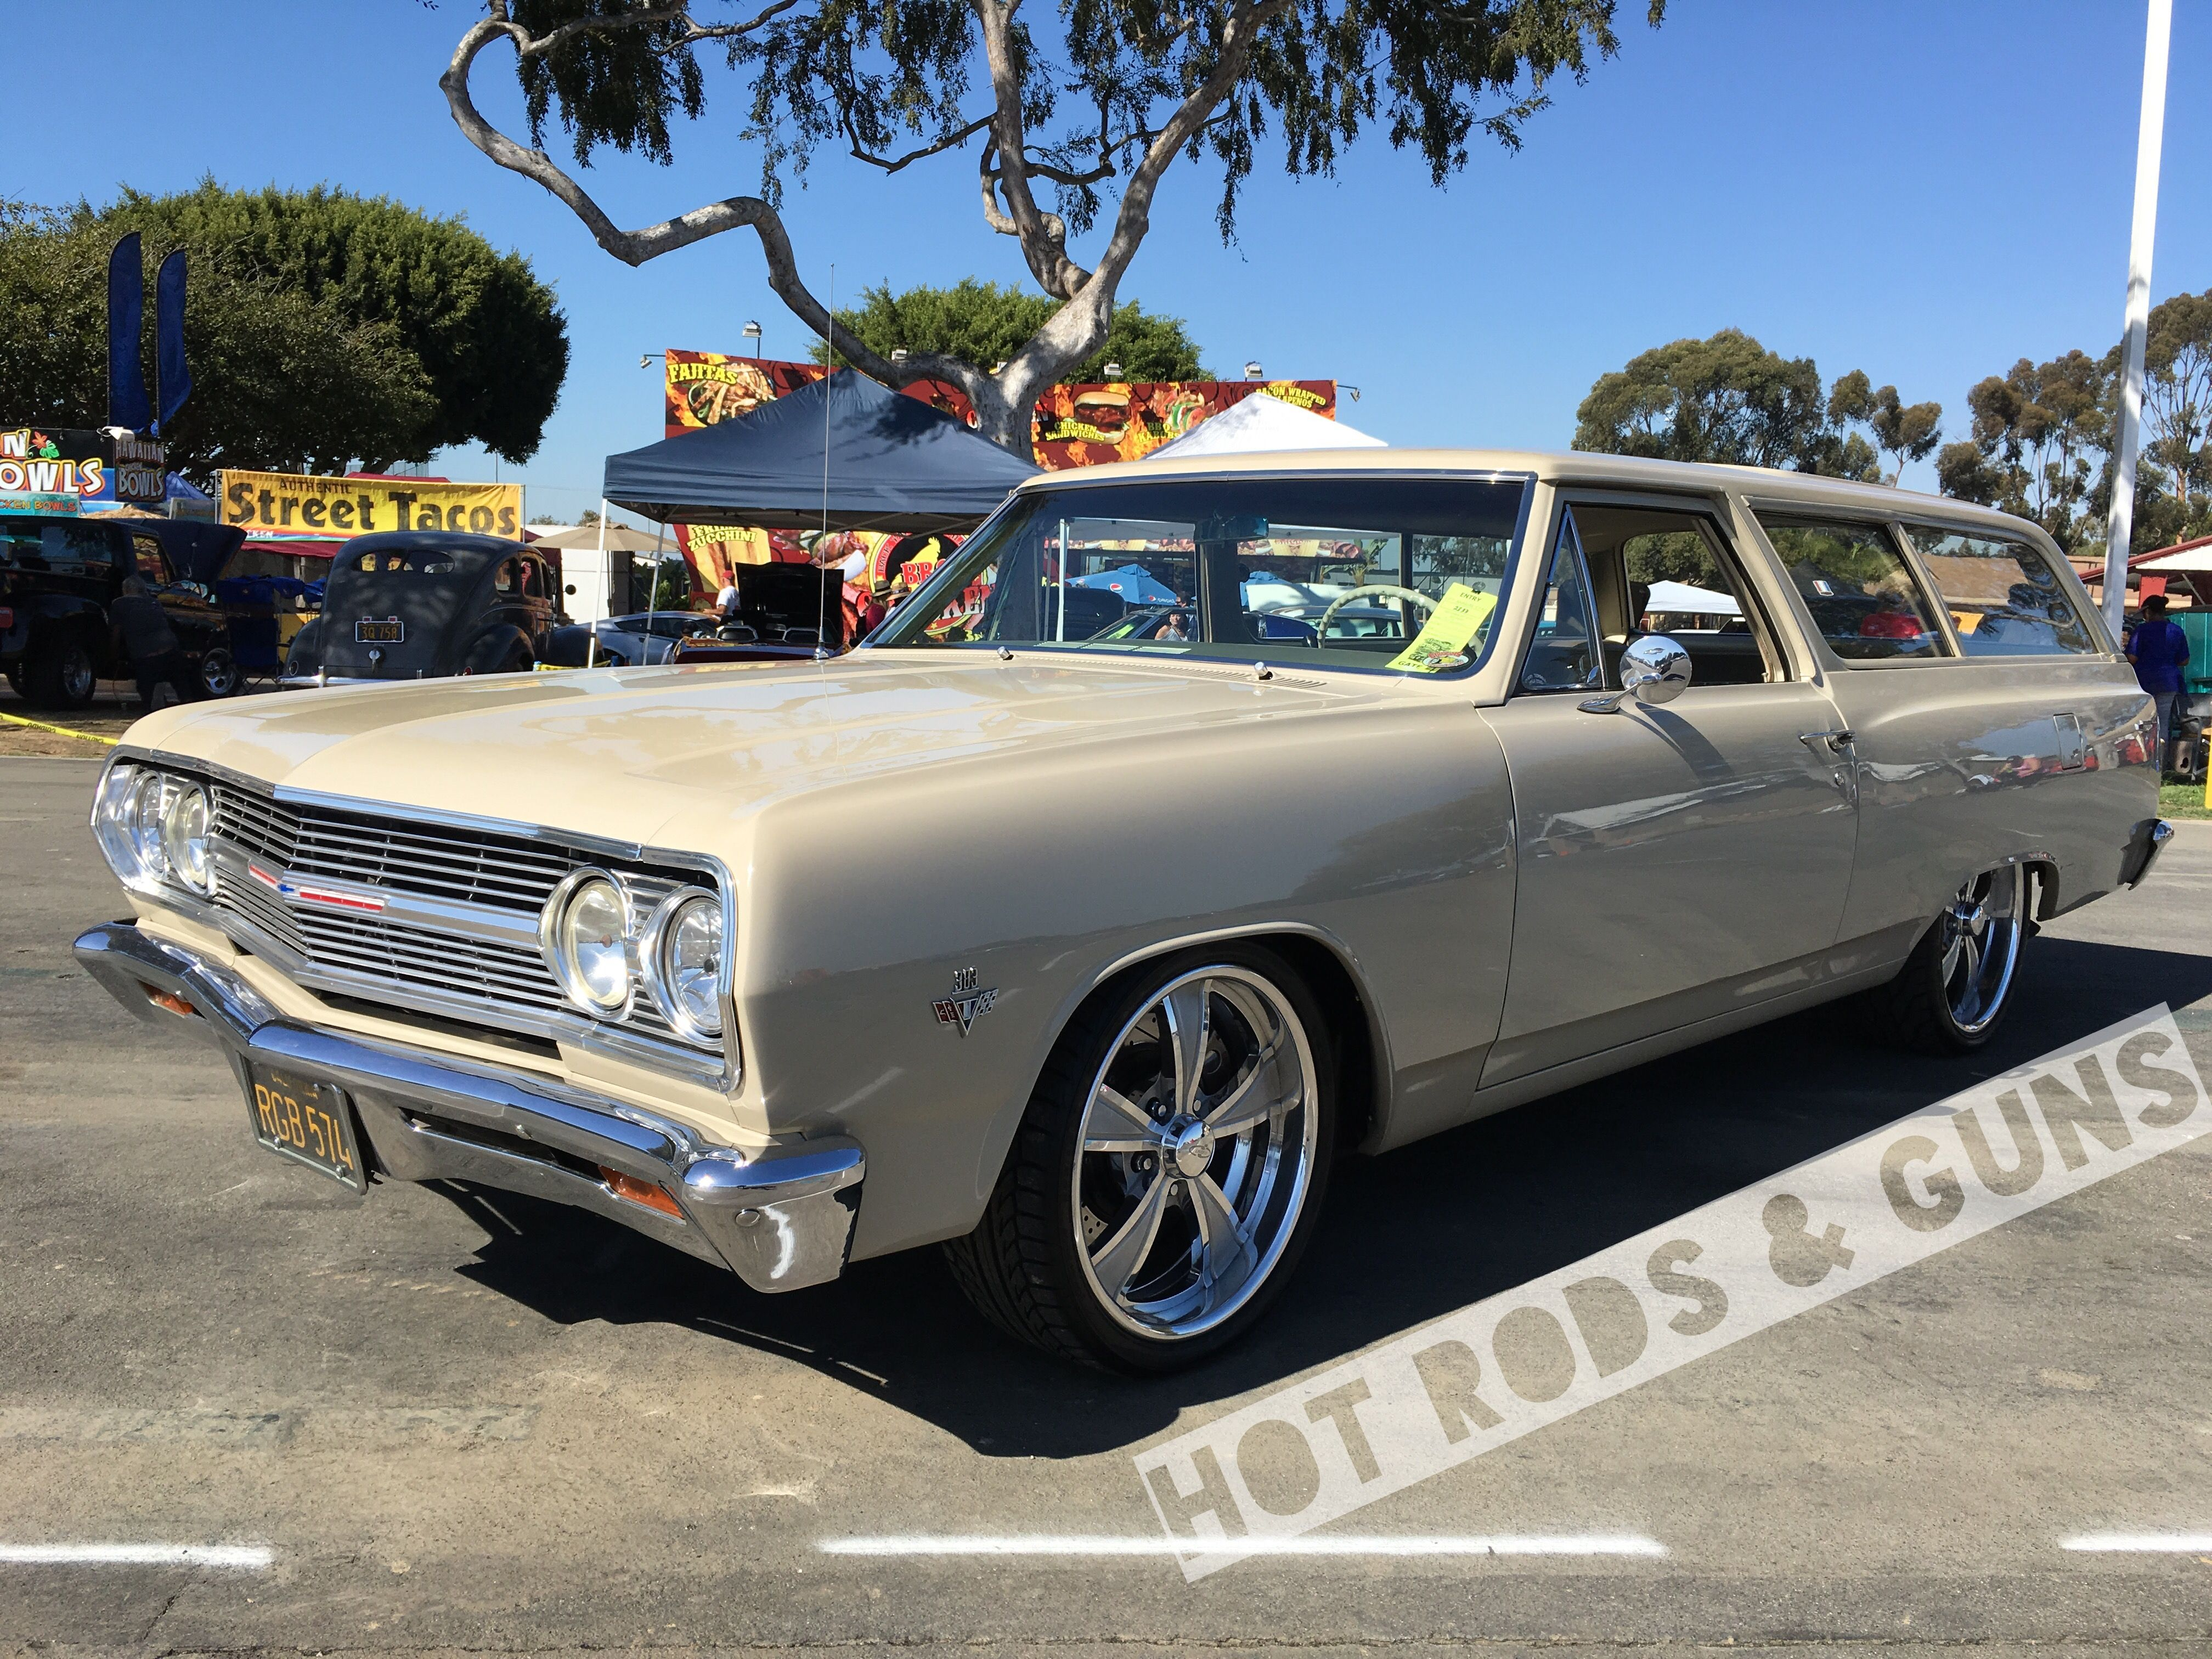 A daily driver gone awry this chevelle wagon shakes the streets chevy hardcore hot rods vi pinterest chevy cars and wheels